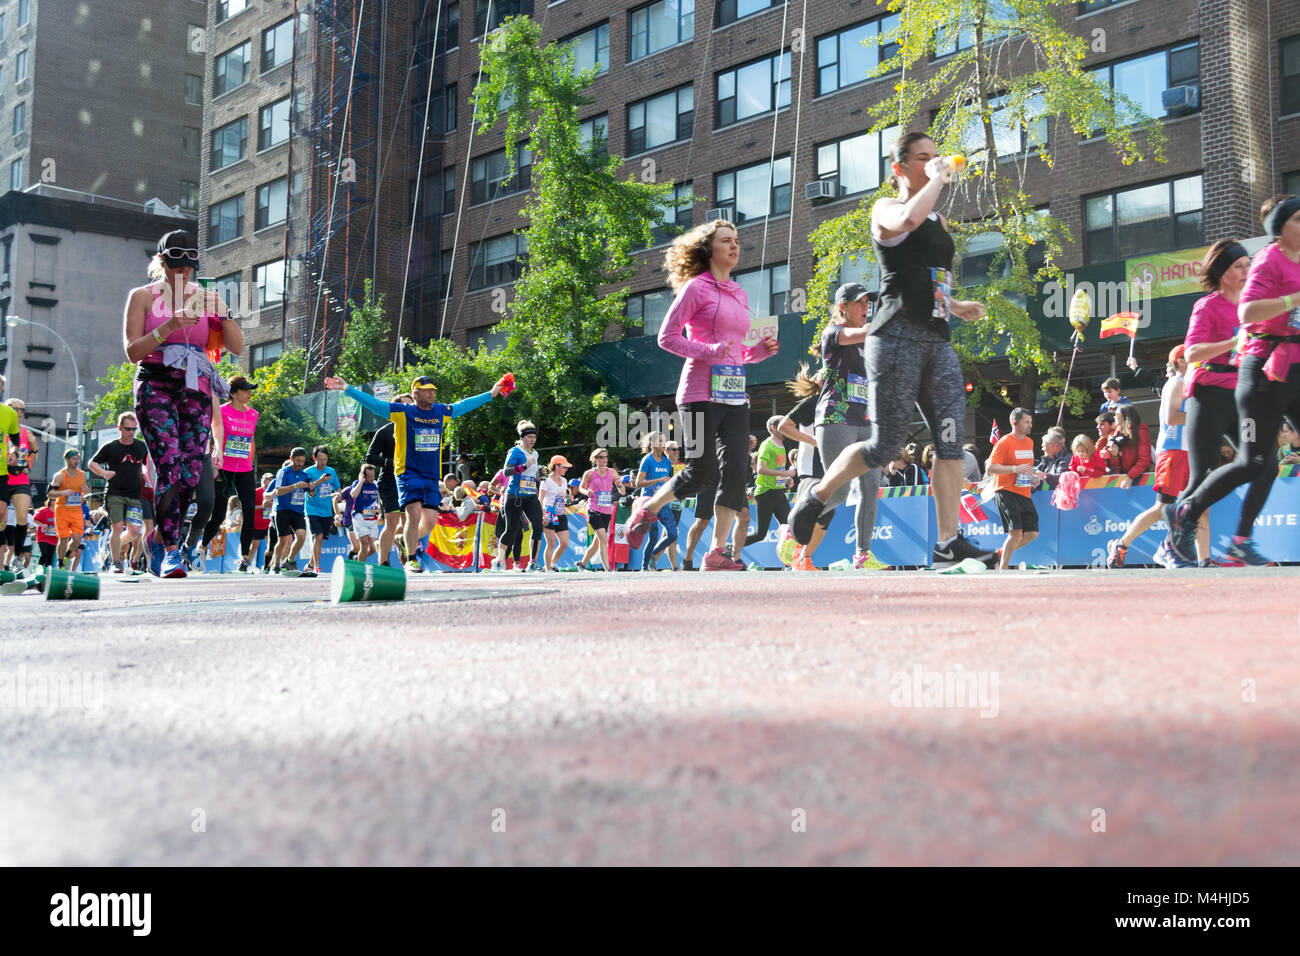 Marathon runners along first avenue in the NYC marathon 2016 - Stock Image